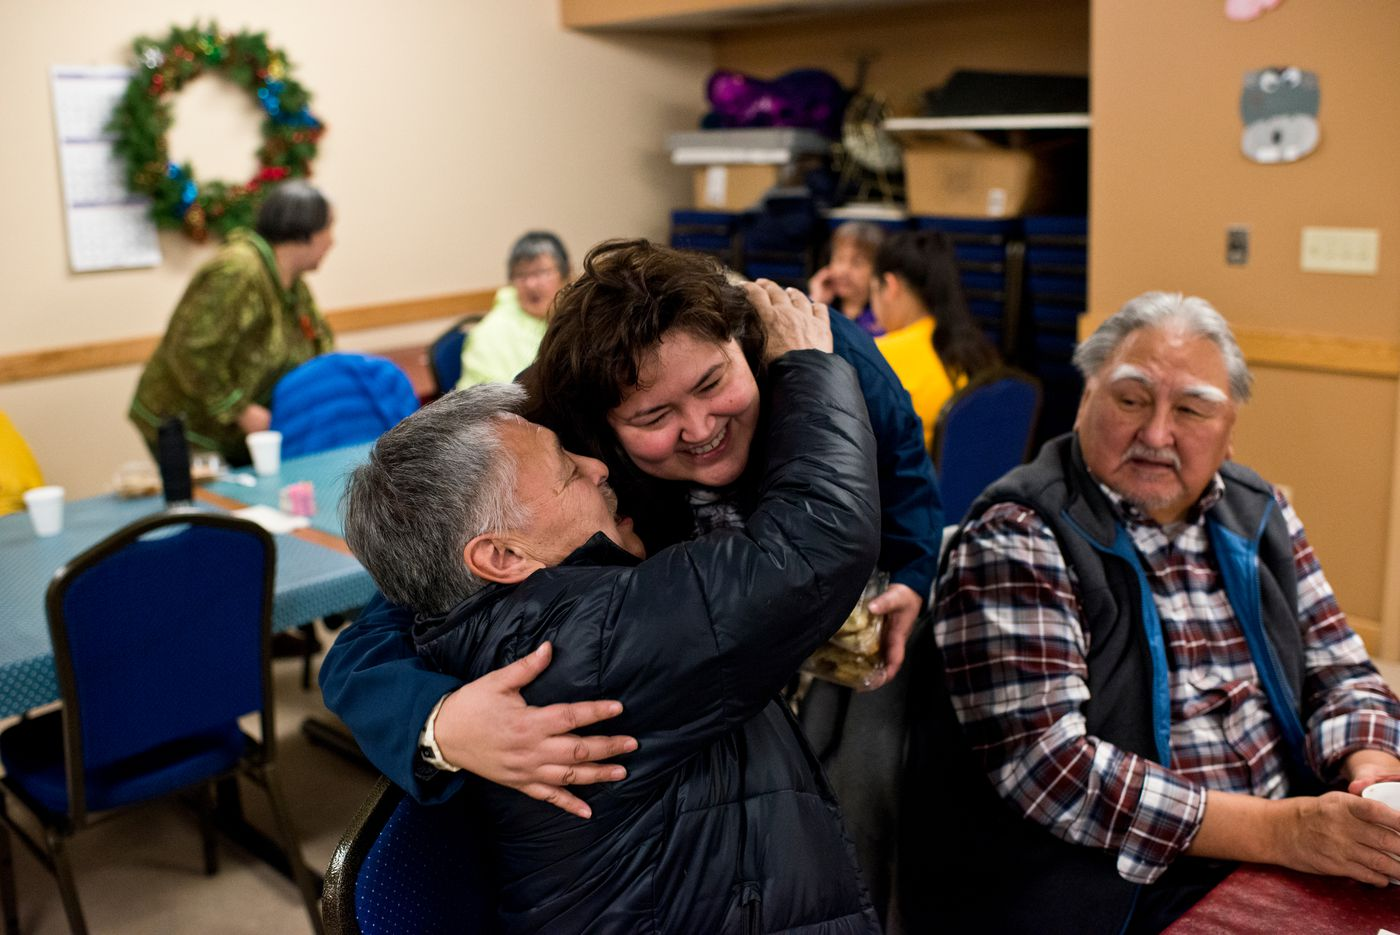 """Arnold Brower gets a hug from Susan Hope during a holiday dinner at the North Slope Borough Senior Center. Brower says he's open to the city's name change as it was approved by voters, and that people will accept it in time. """"I know it won by a small margin but that's what politics is,"""" he said. (Marc Lester / Alaska Dispatch News)"""